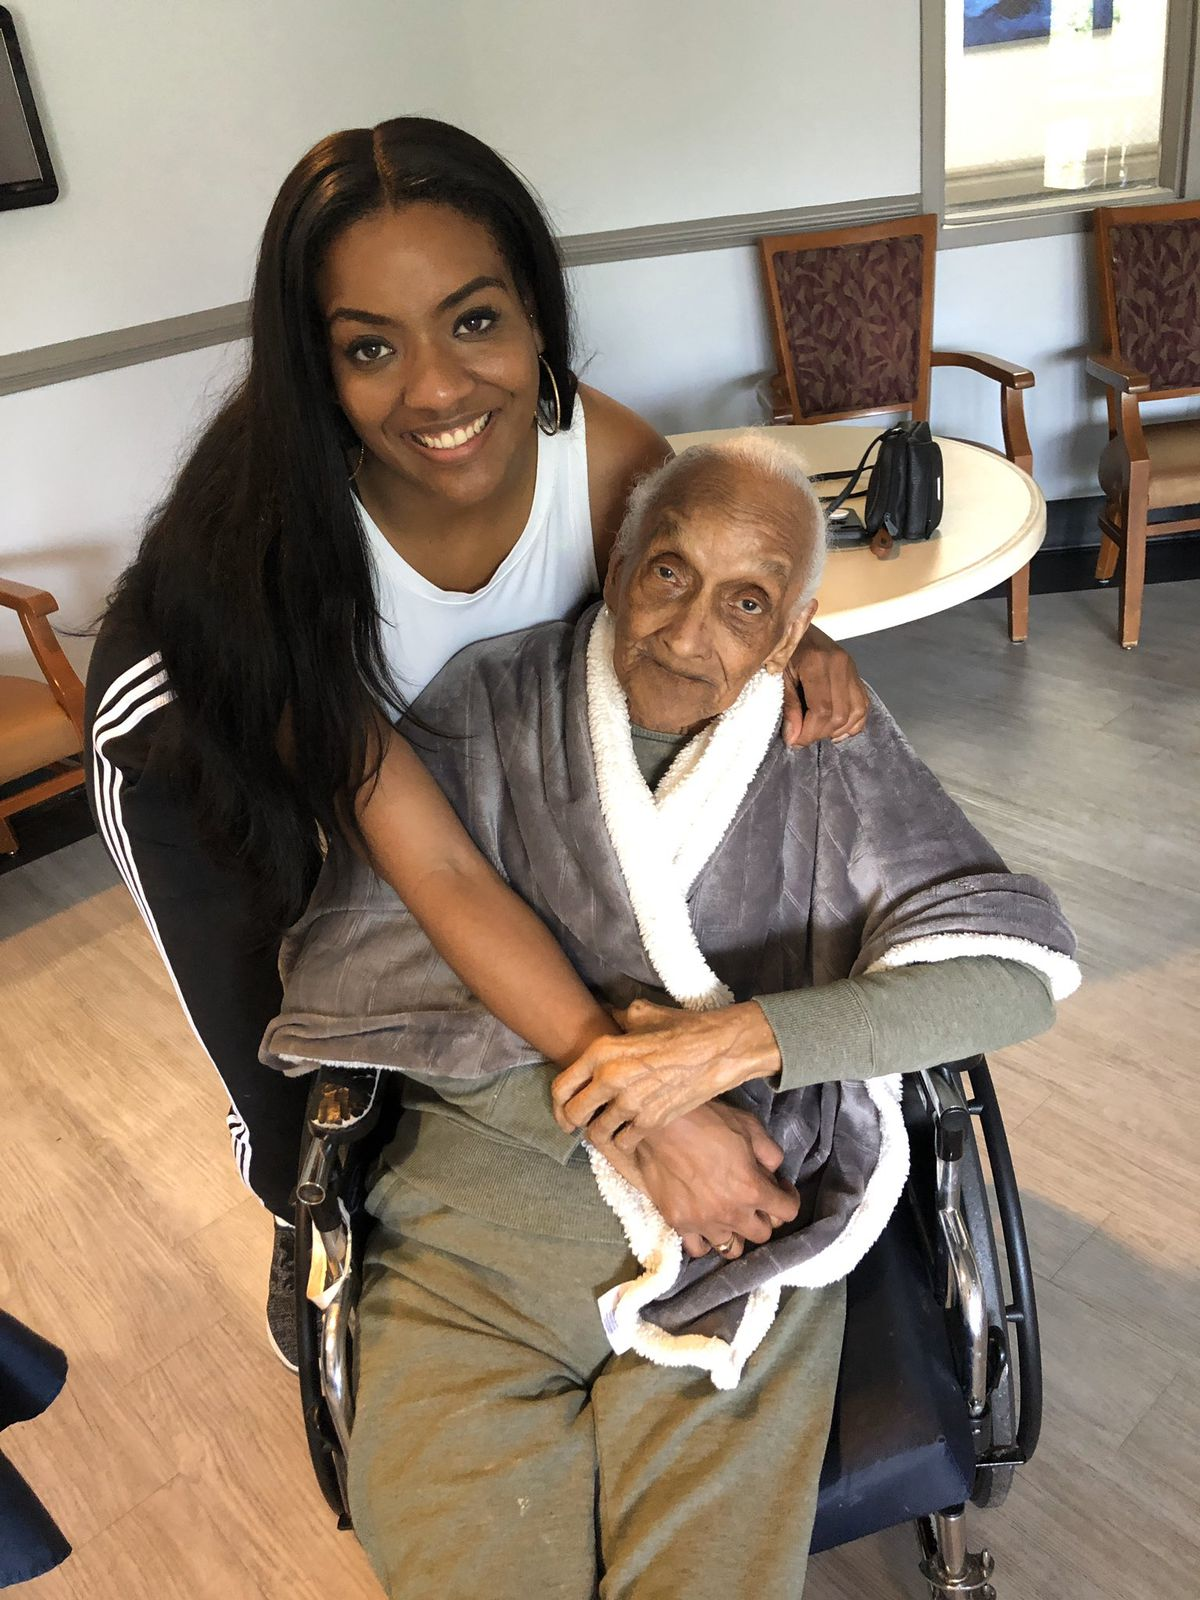 Janel Forte is posing with her grandmother in a wheel chair.